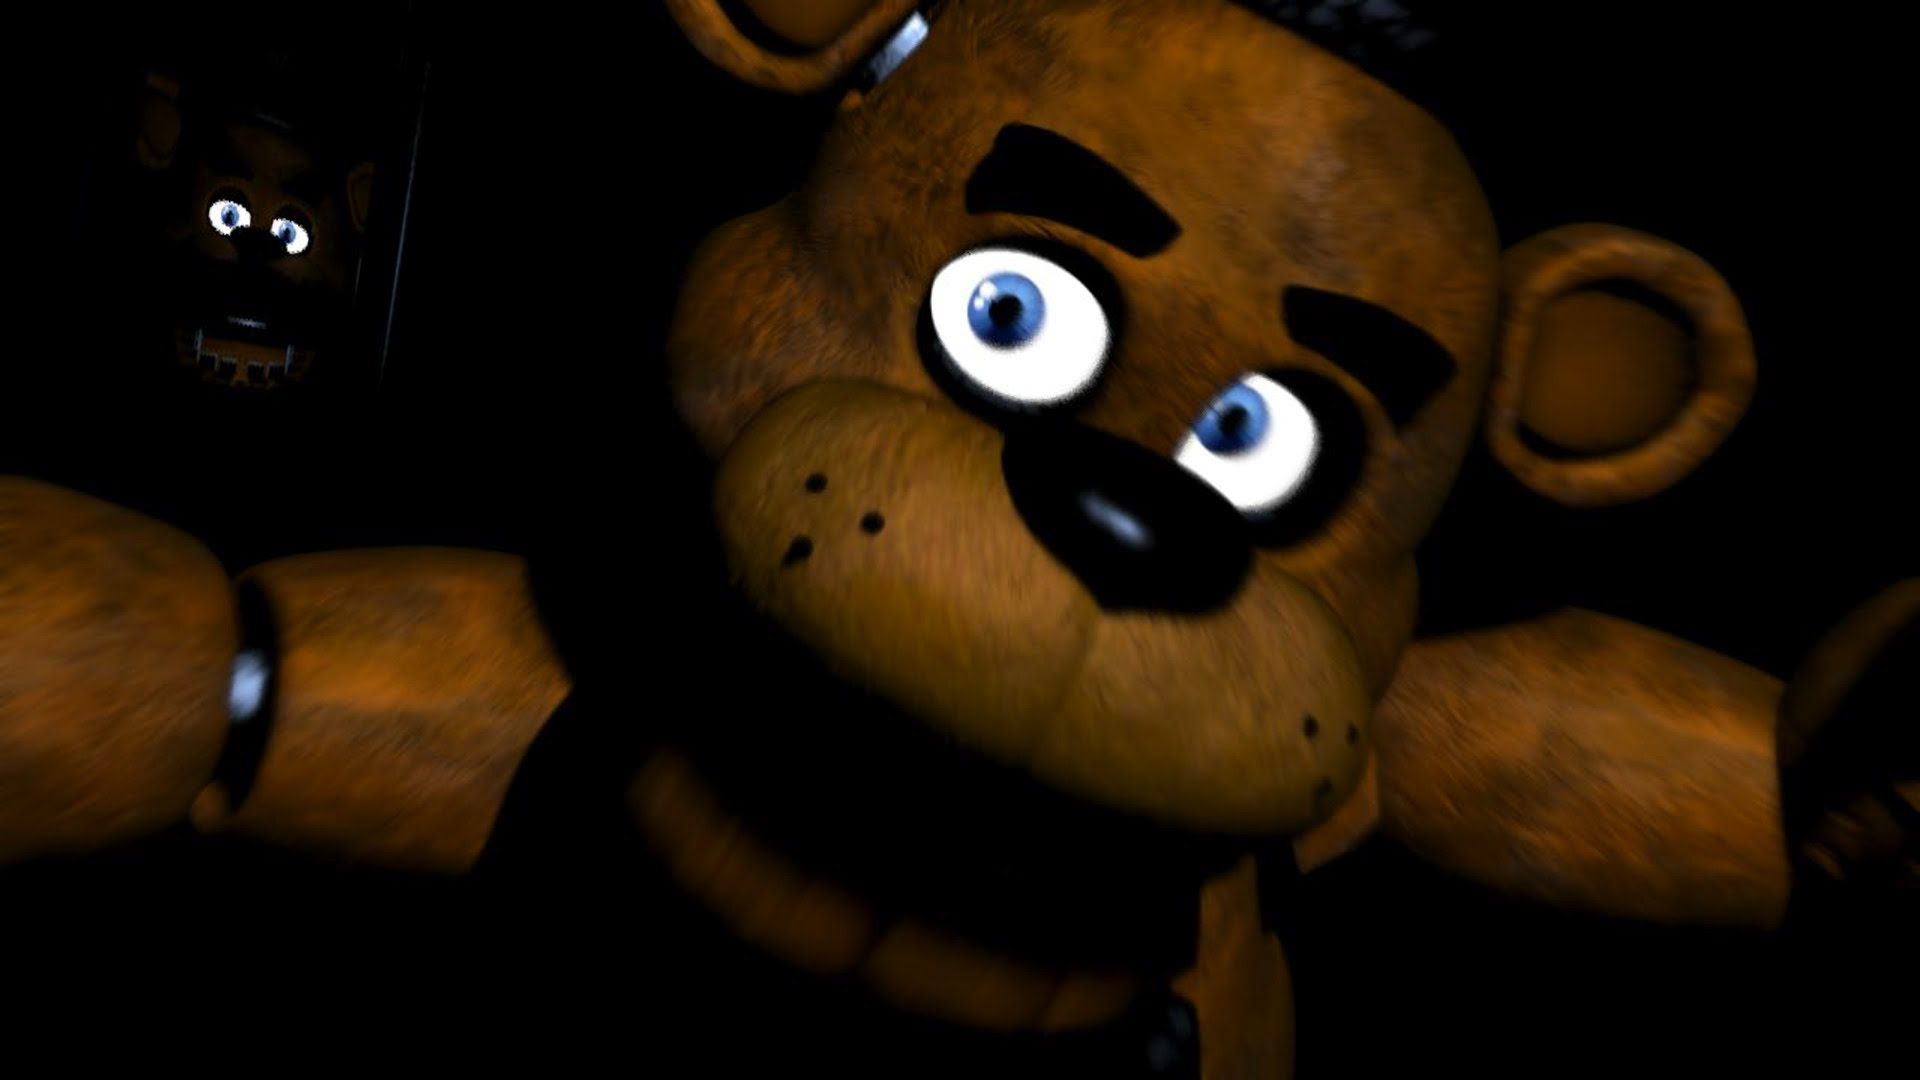 A Five Nights at Freddy's movie is coming from Harry Potter director Chris Columbus screenshot